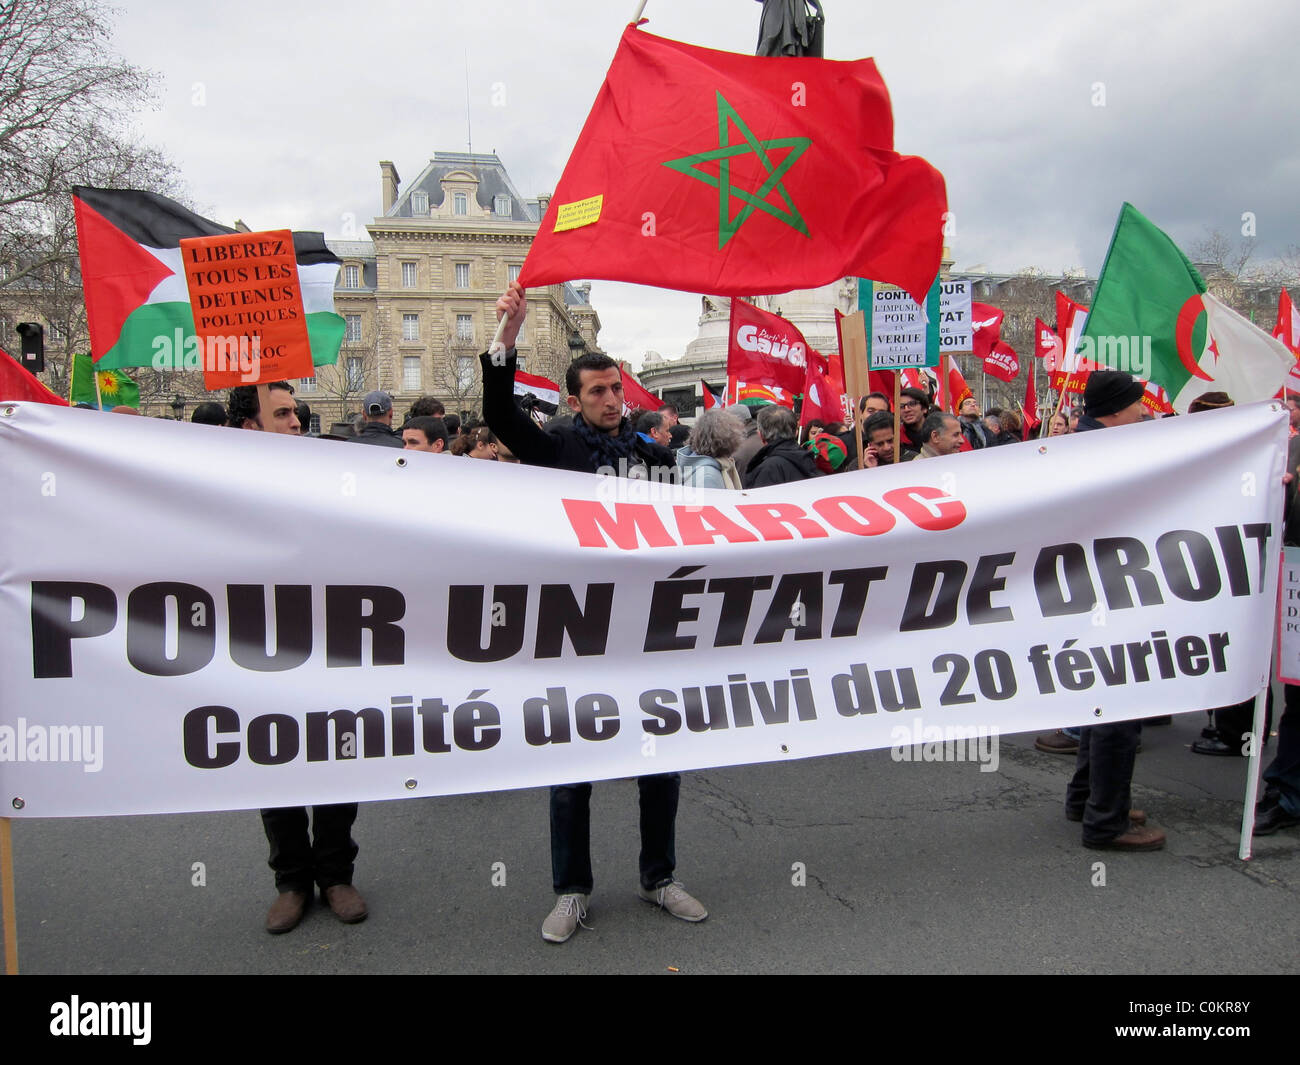 Paris, France, Morocco Demonstration, French Banner , Solidarity of Arab Revolutions 'Arab Spring Protests' - Stock Image